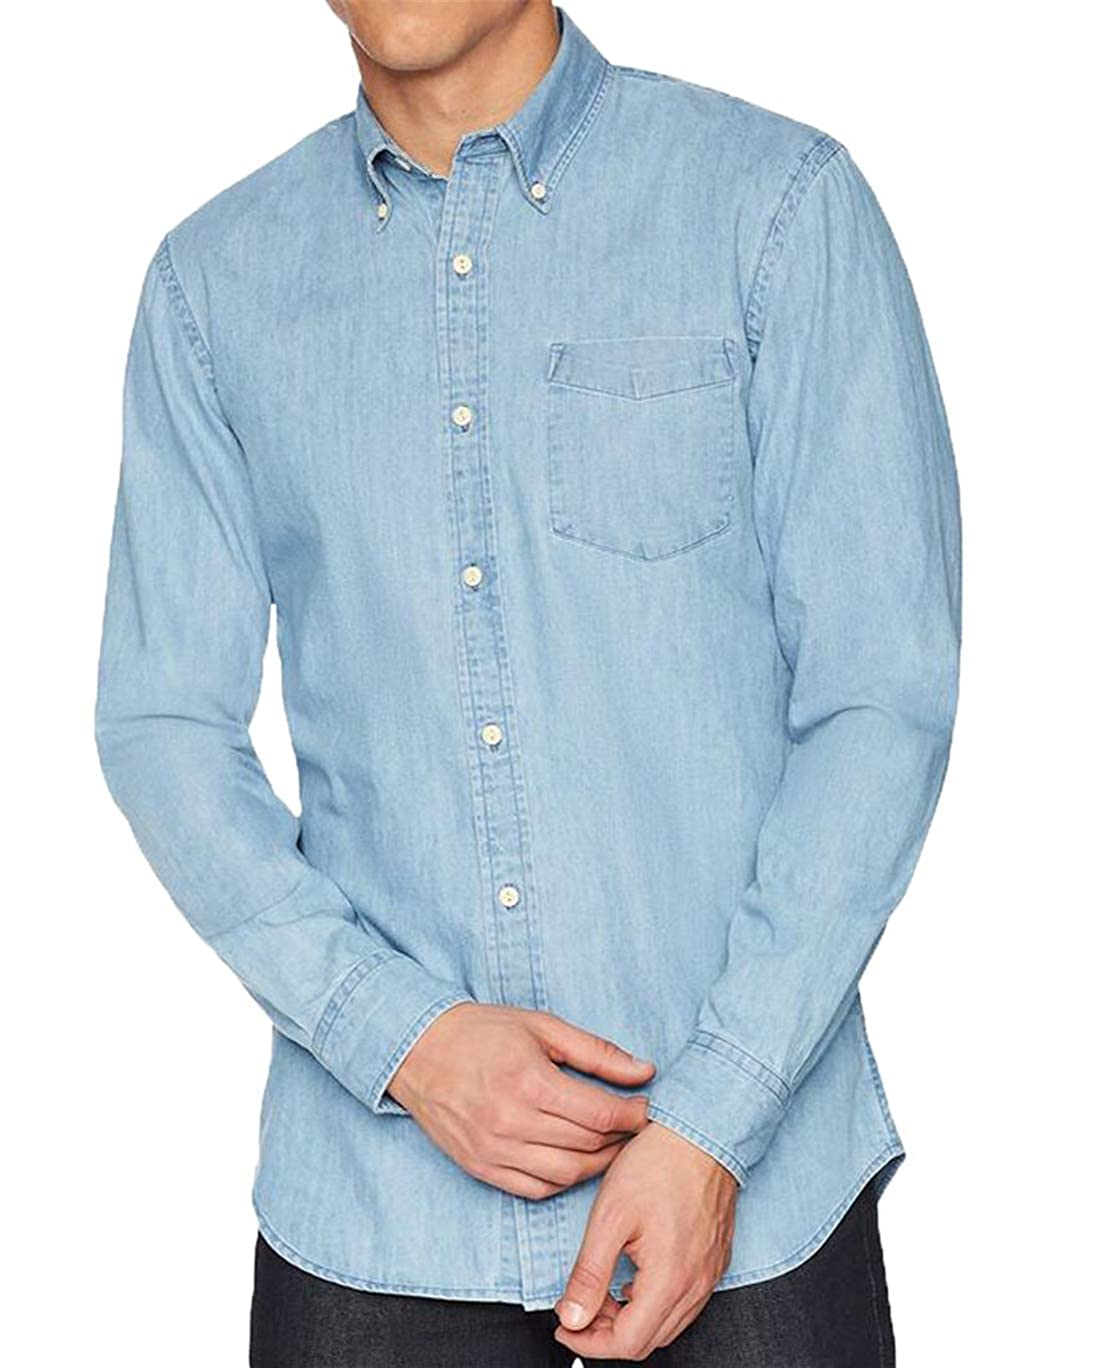 Hilization Mens Casual Stylish Long Sleeve Button Down Cotton Pocket Jeans Denim Shirts